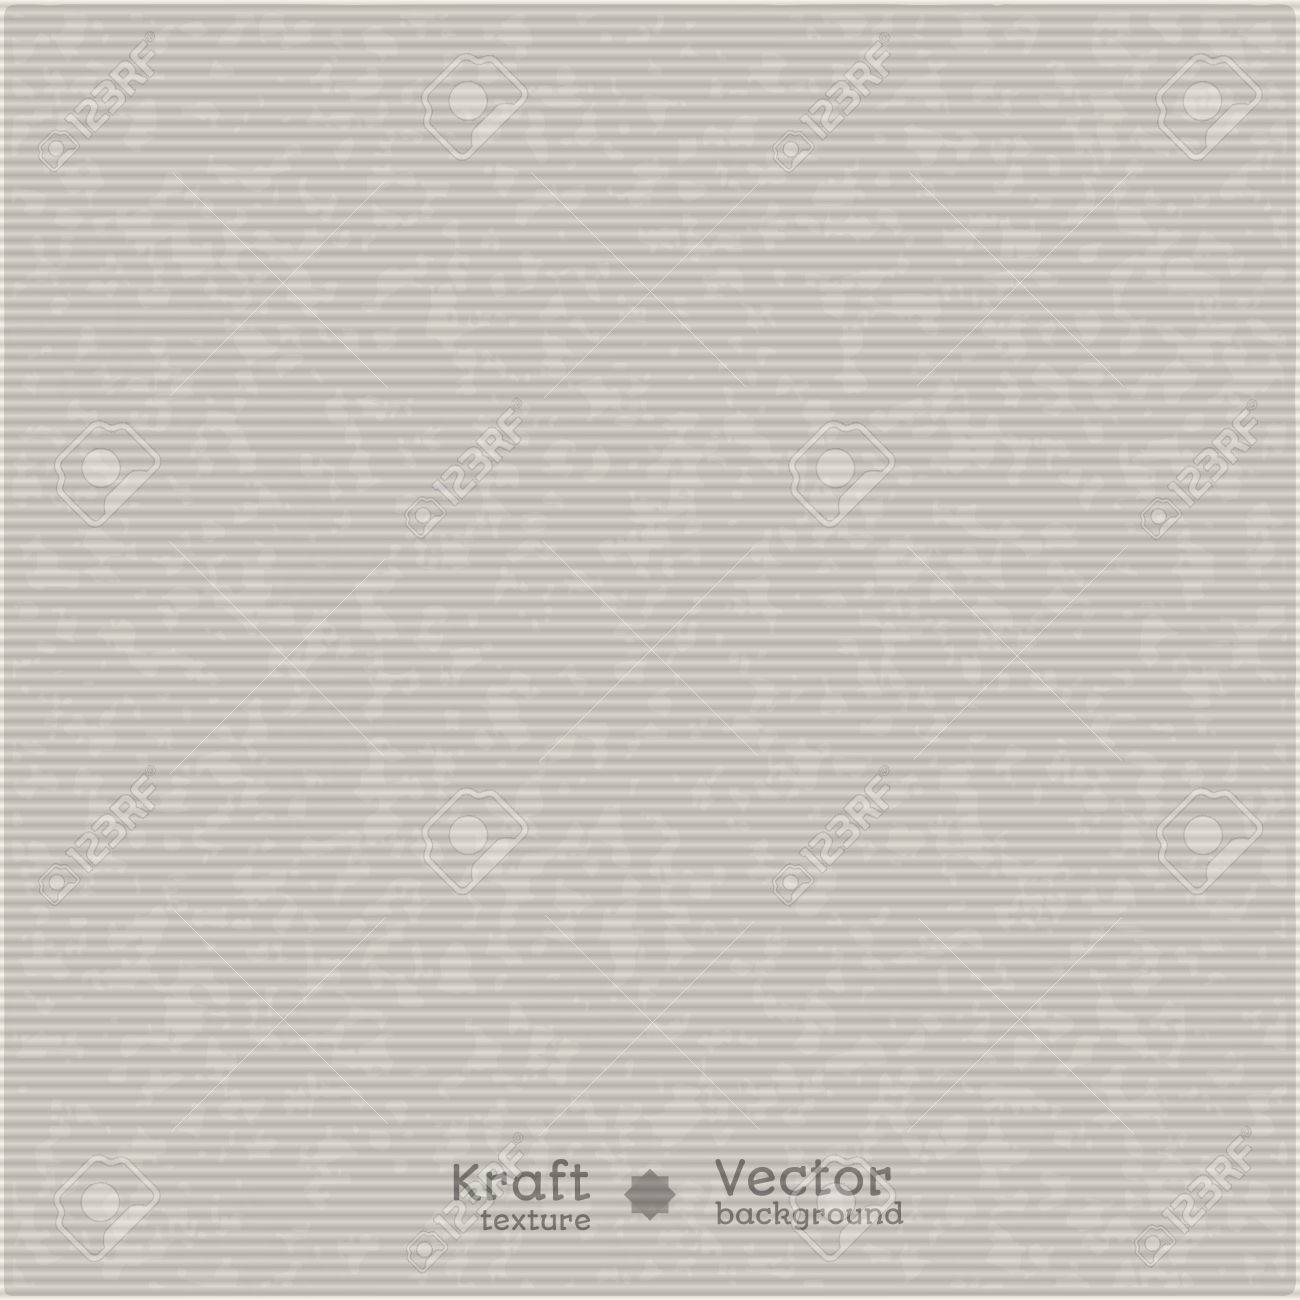 Shads Of Gray Vector Background Realistic Texture Horizontal Kraft Paper In Shades Of Gray It Can Be Used For Package Design Labels And Presentation